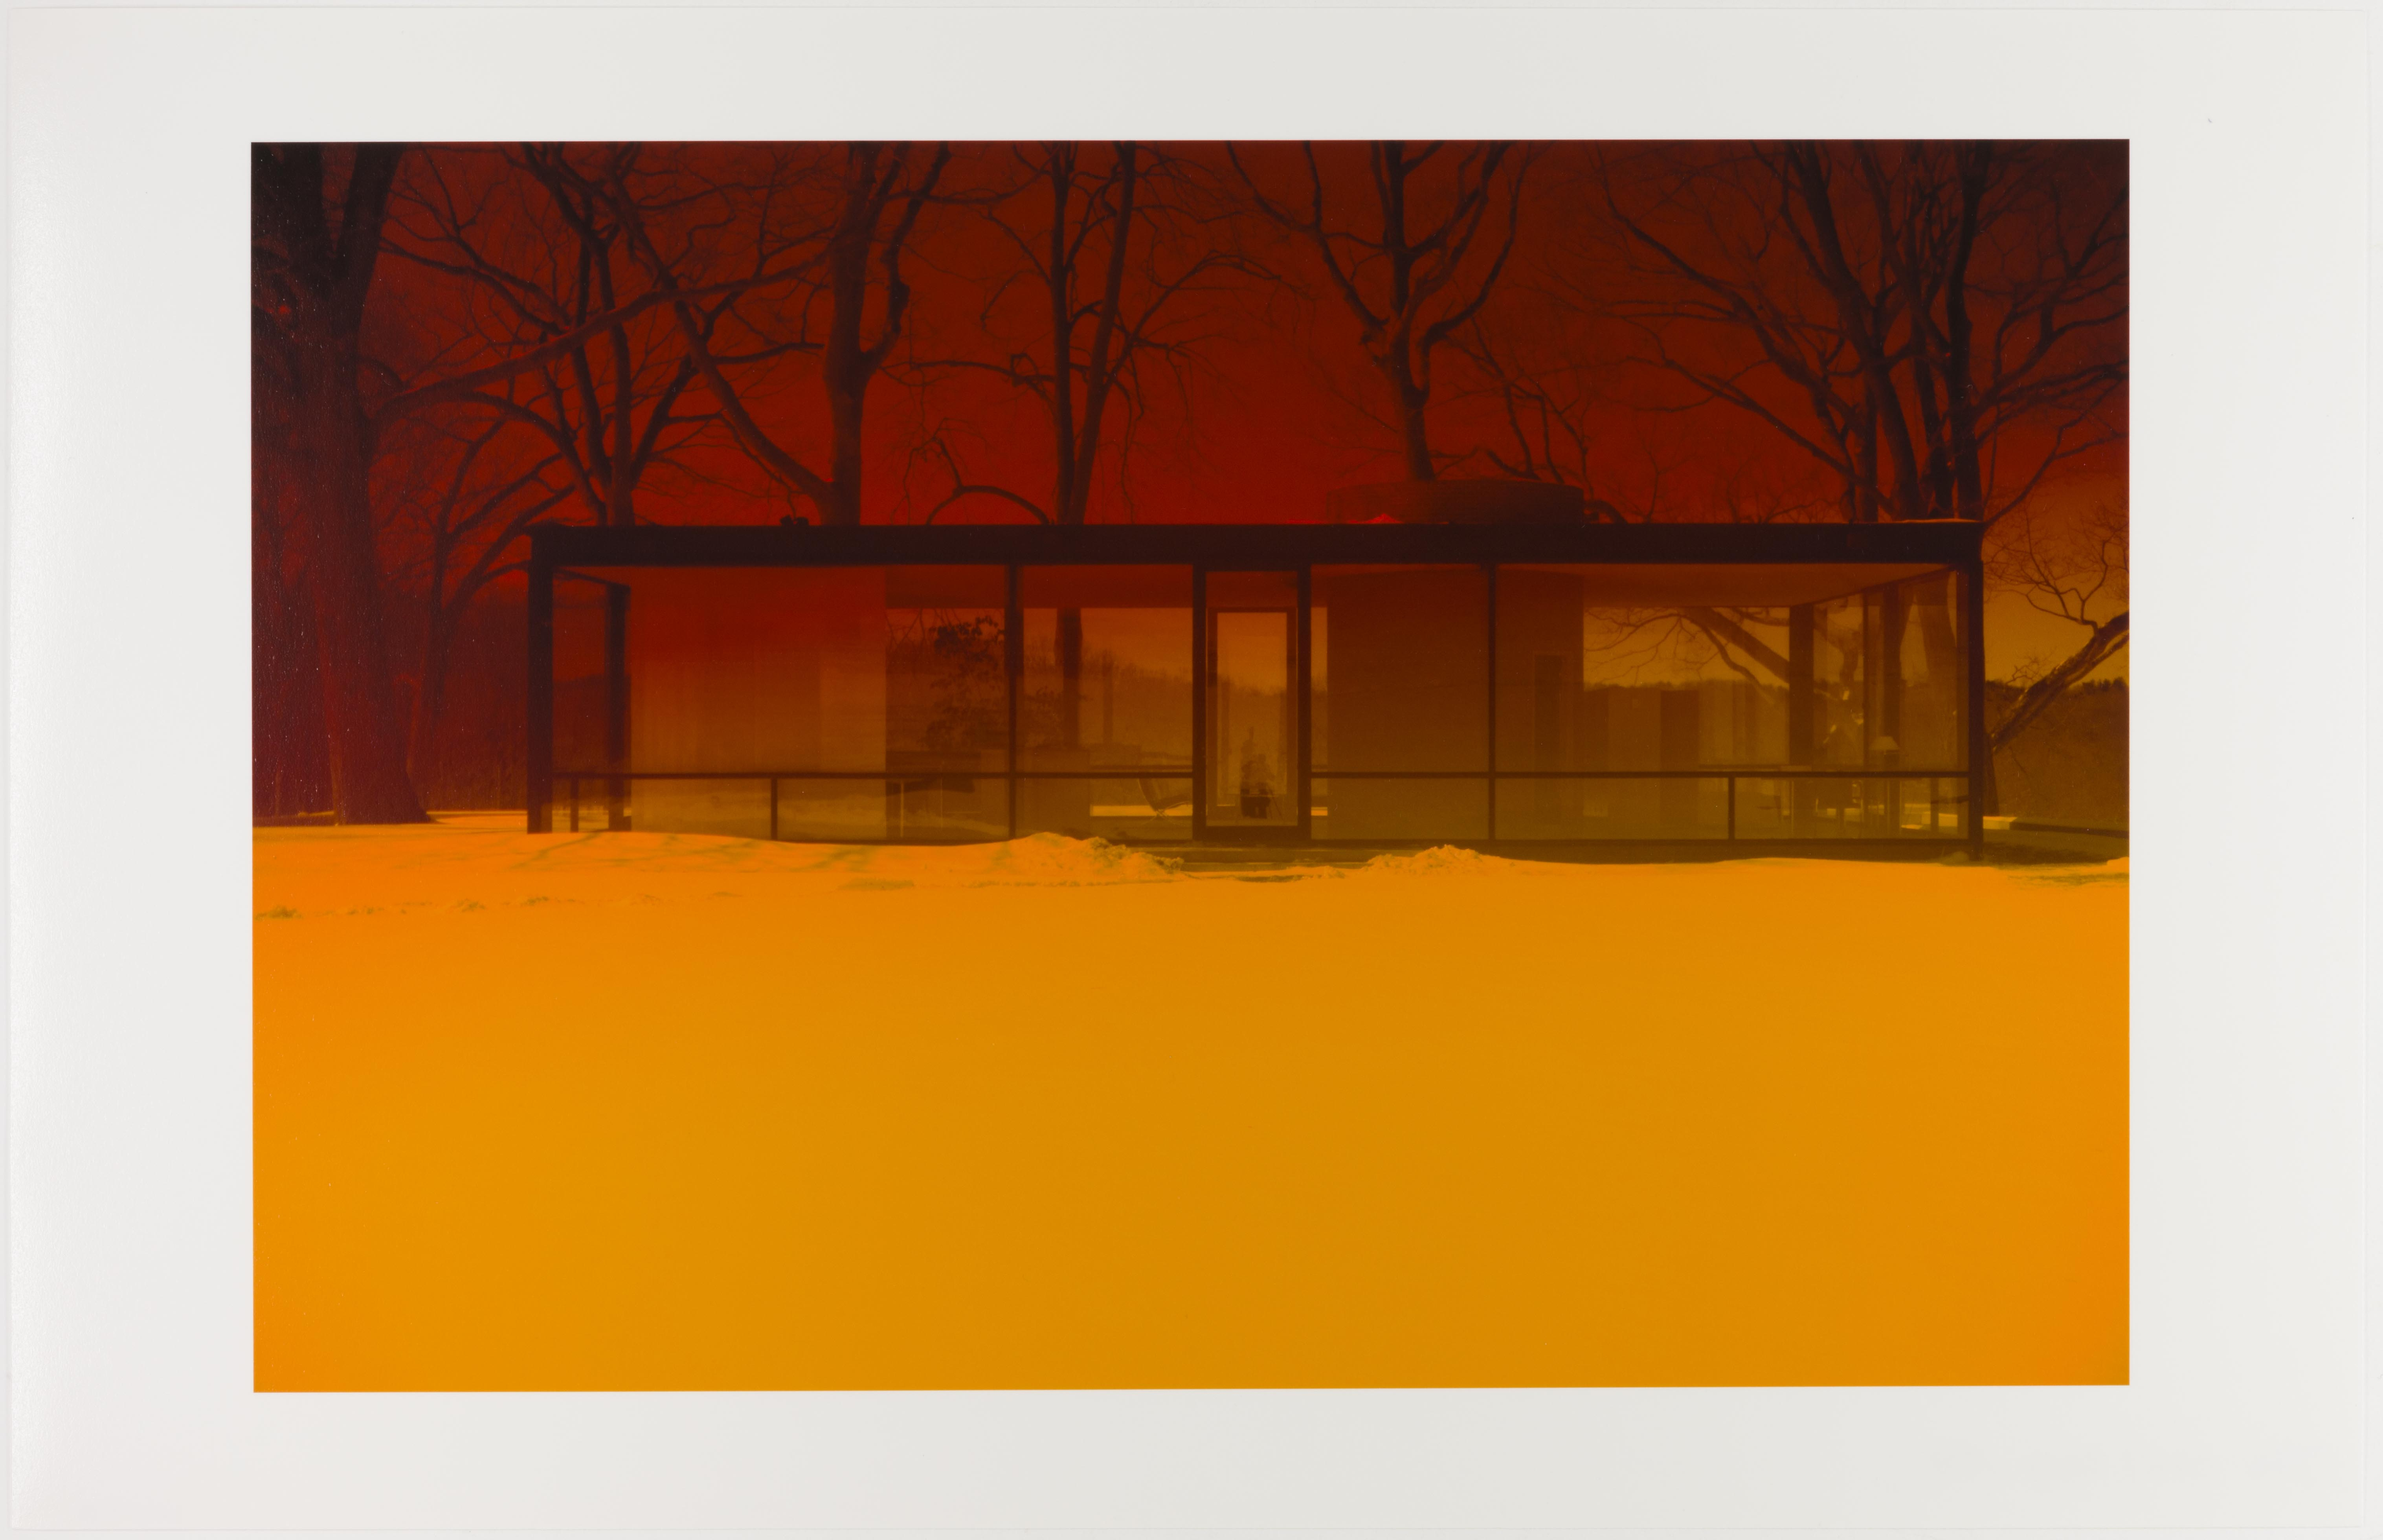 James Welling, 0469, 2009